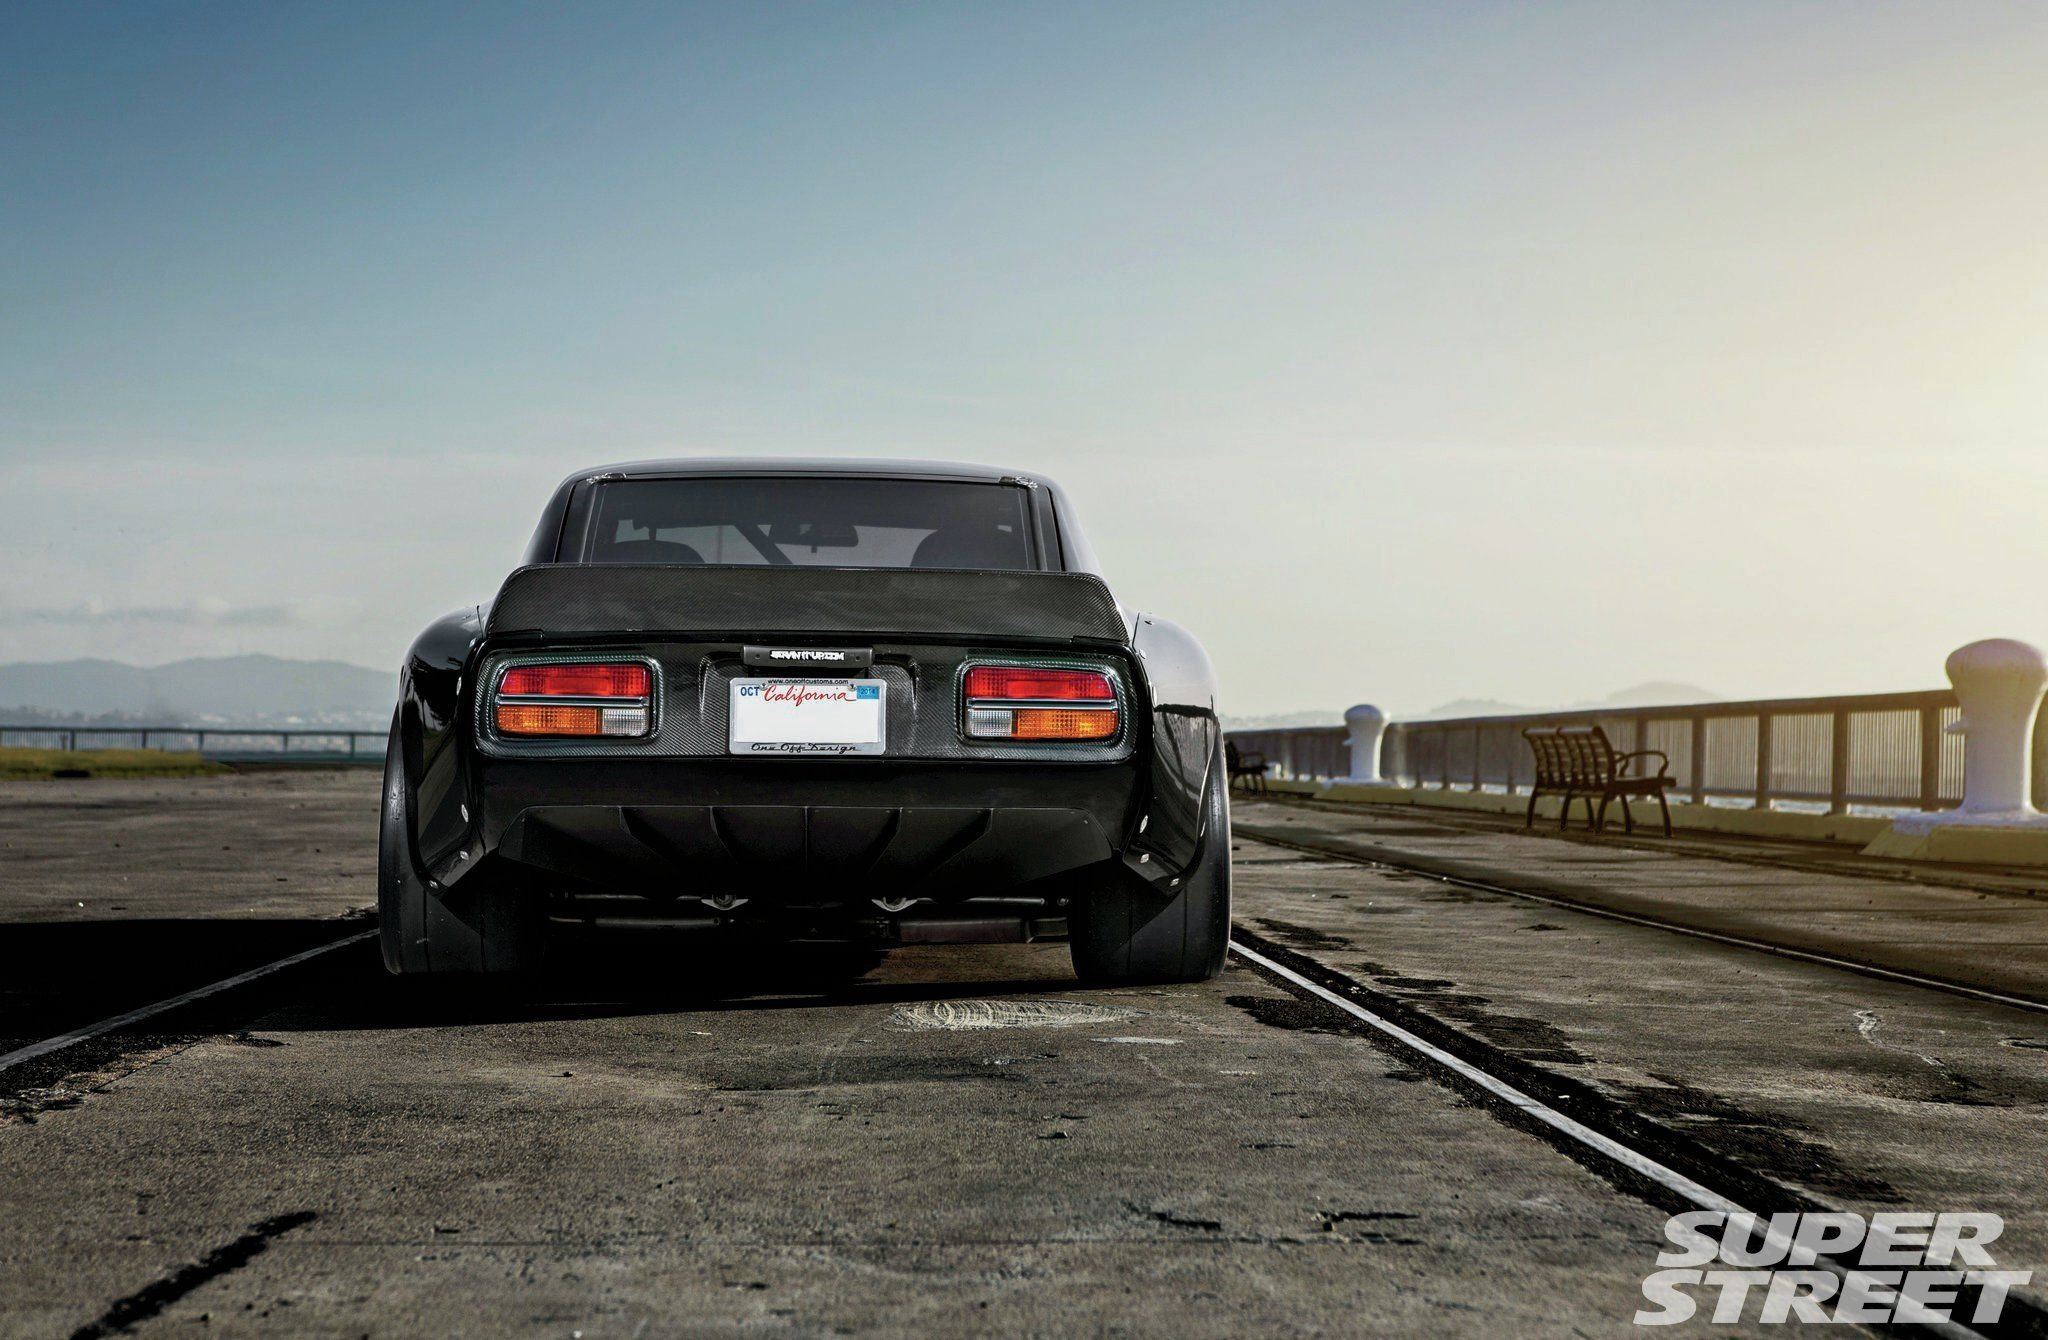 1972 Datsun 240Z coupe cars tuning wallpaper | 2048x1340 ...1972 Datsun 240z Wallpaper